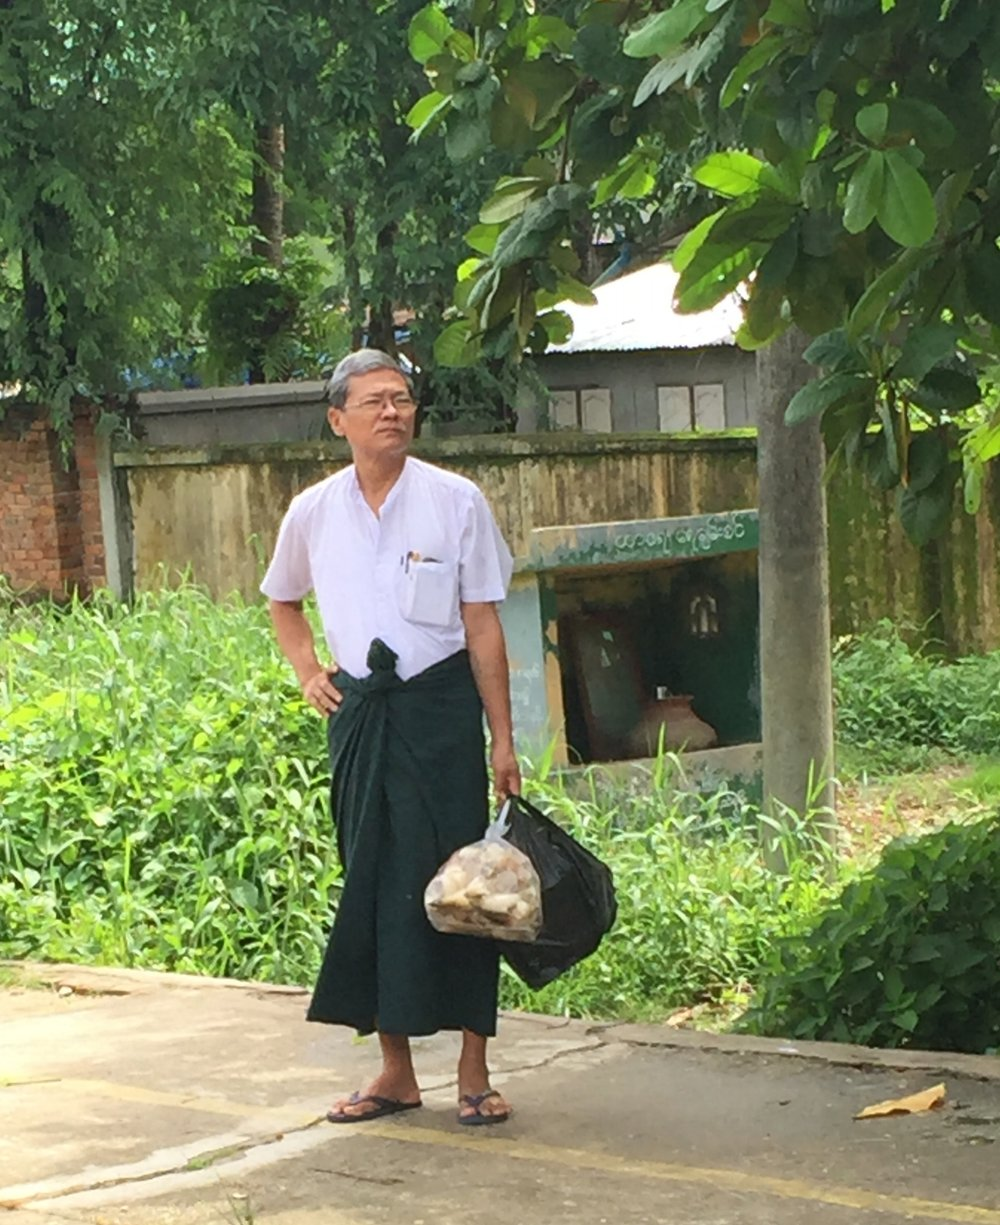 Typical dress of a man on the way to work